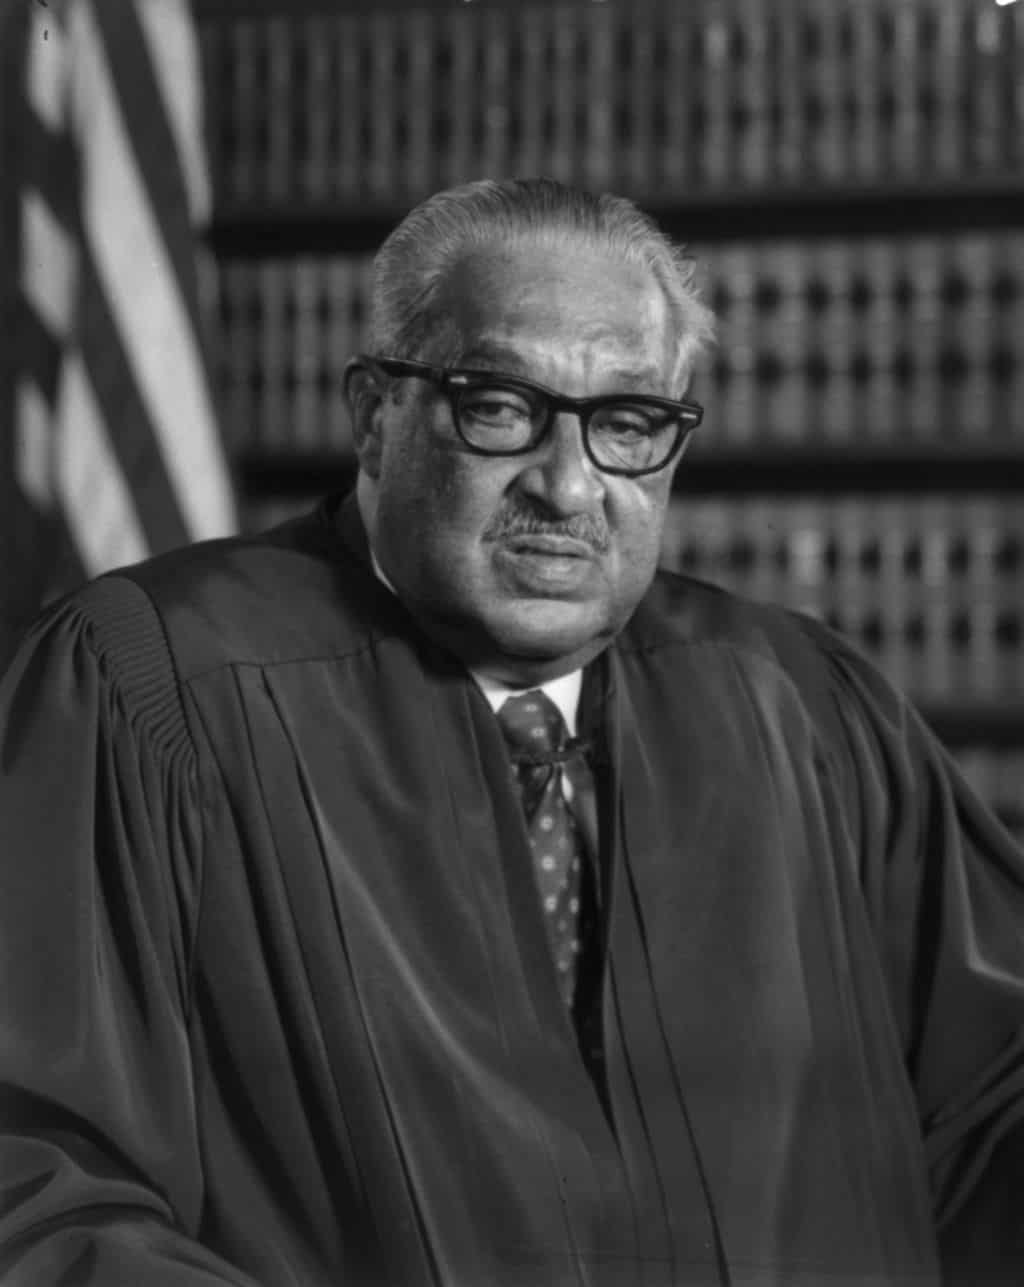 frederick douglass word foundations at a press conference held on 28 1991 supreme court justice thurgood marshall the only black justice to have served on the court announced that he